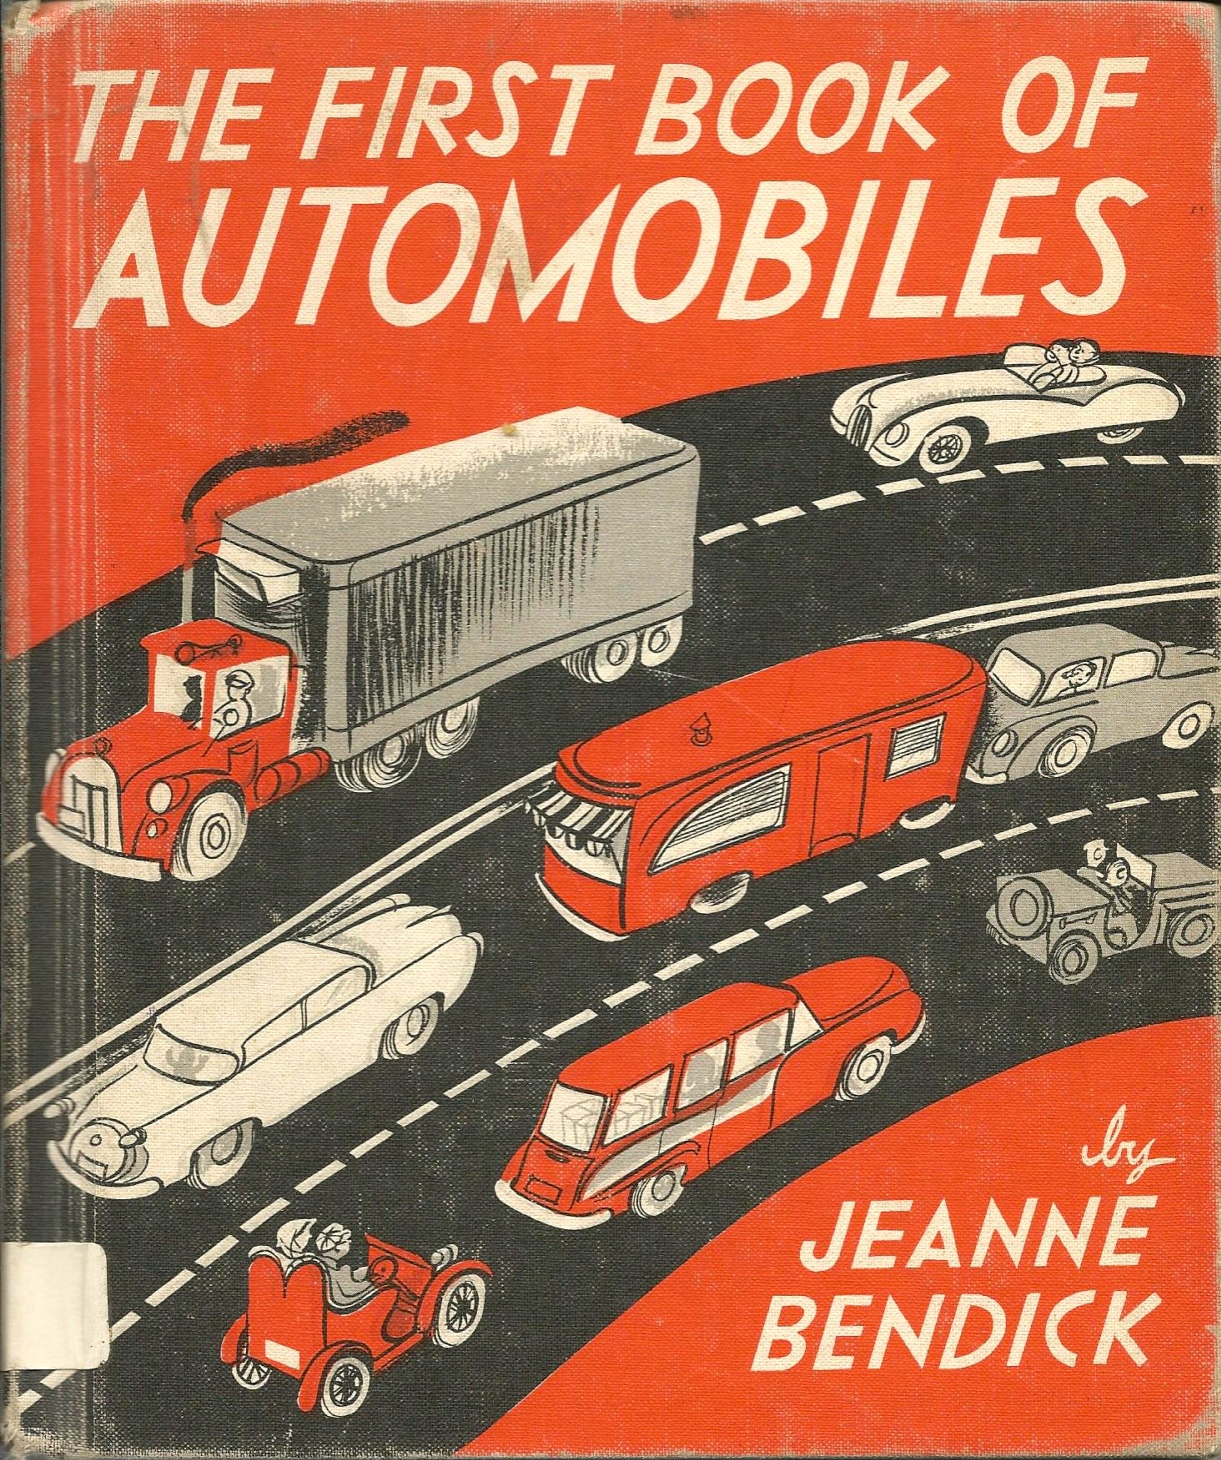 1955 The First Book of Automobiles available here for a mere 7 bucks.